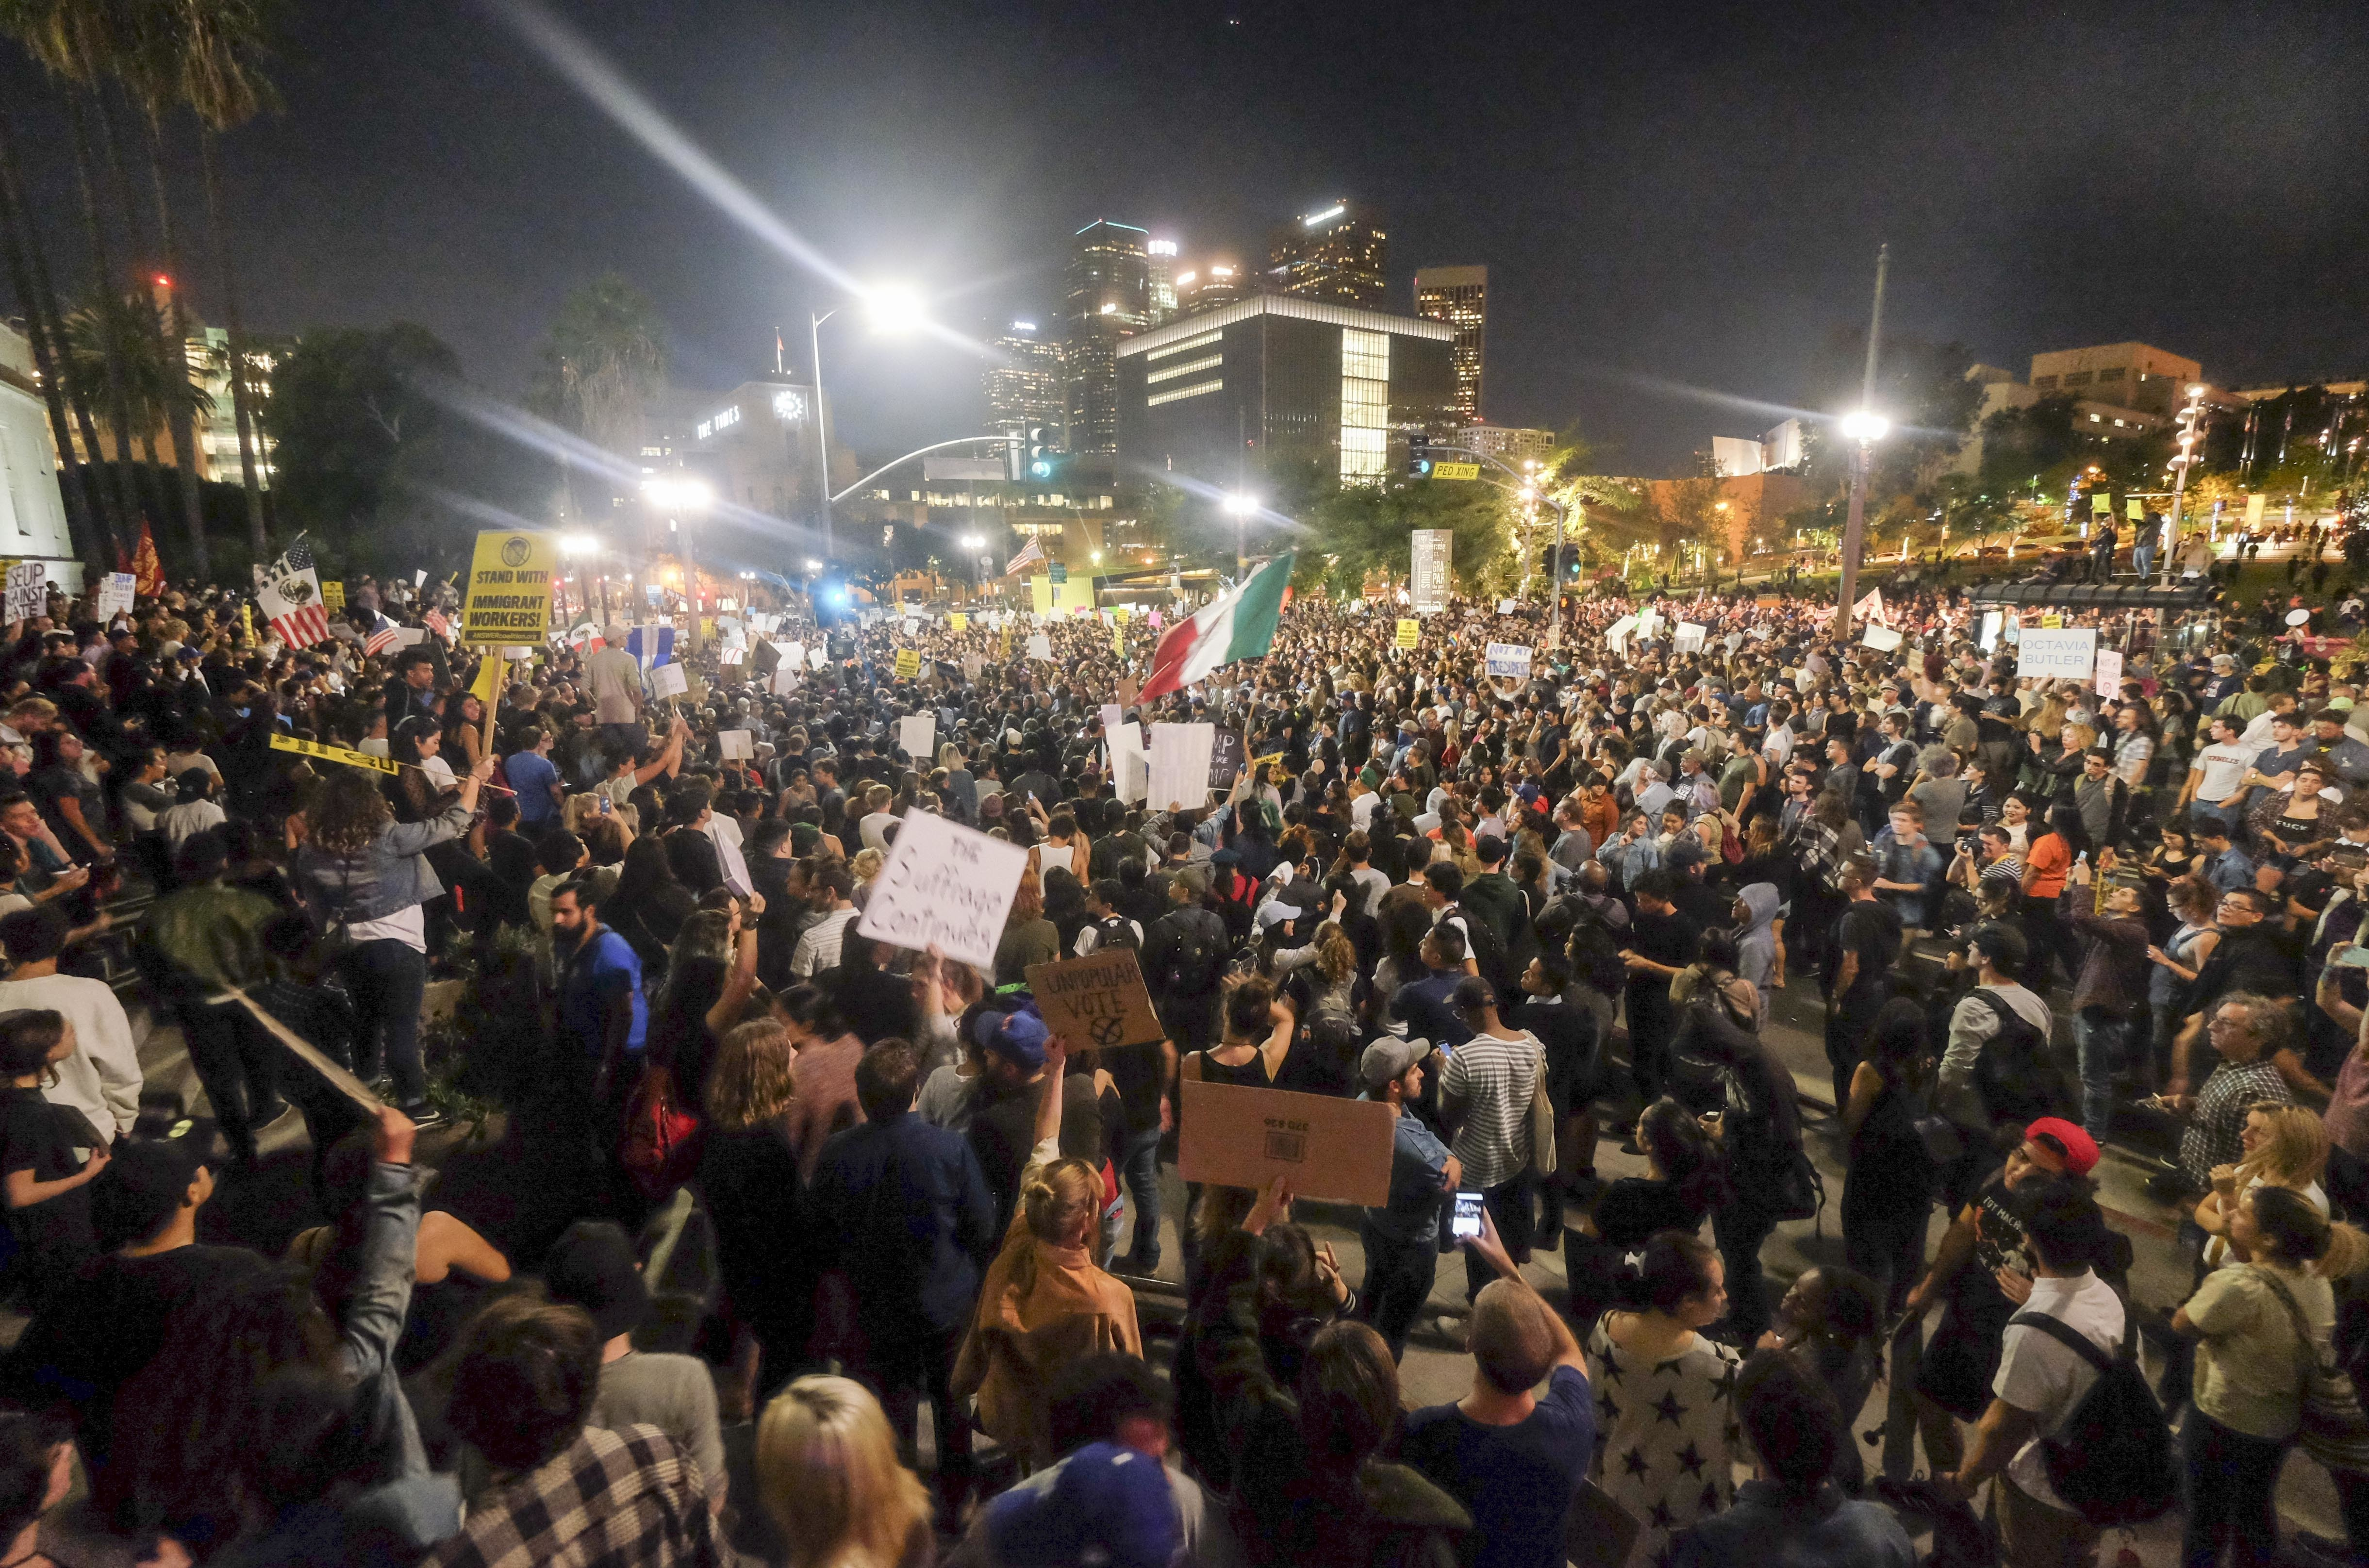 Across The Country, Crowds March In Protest Against Trump's Victory